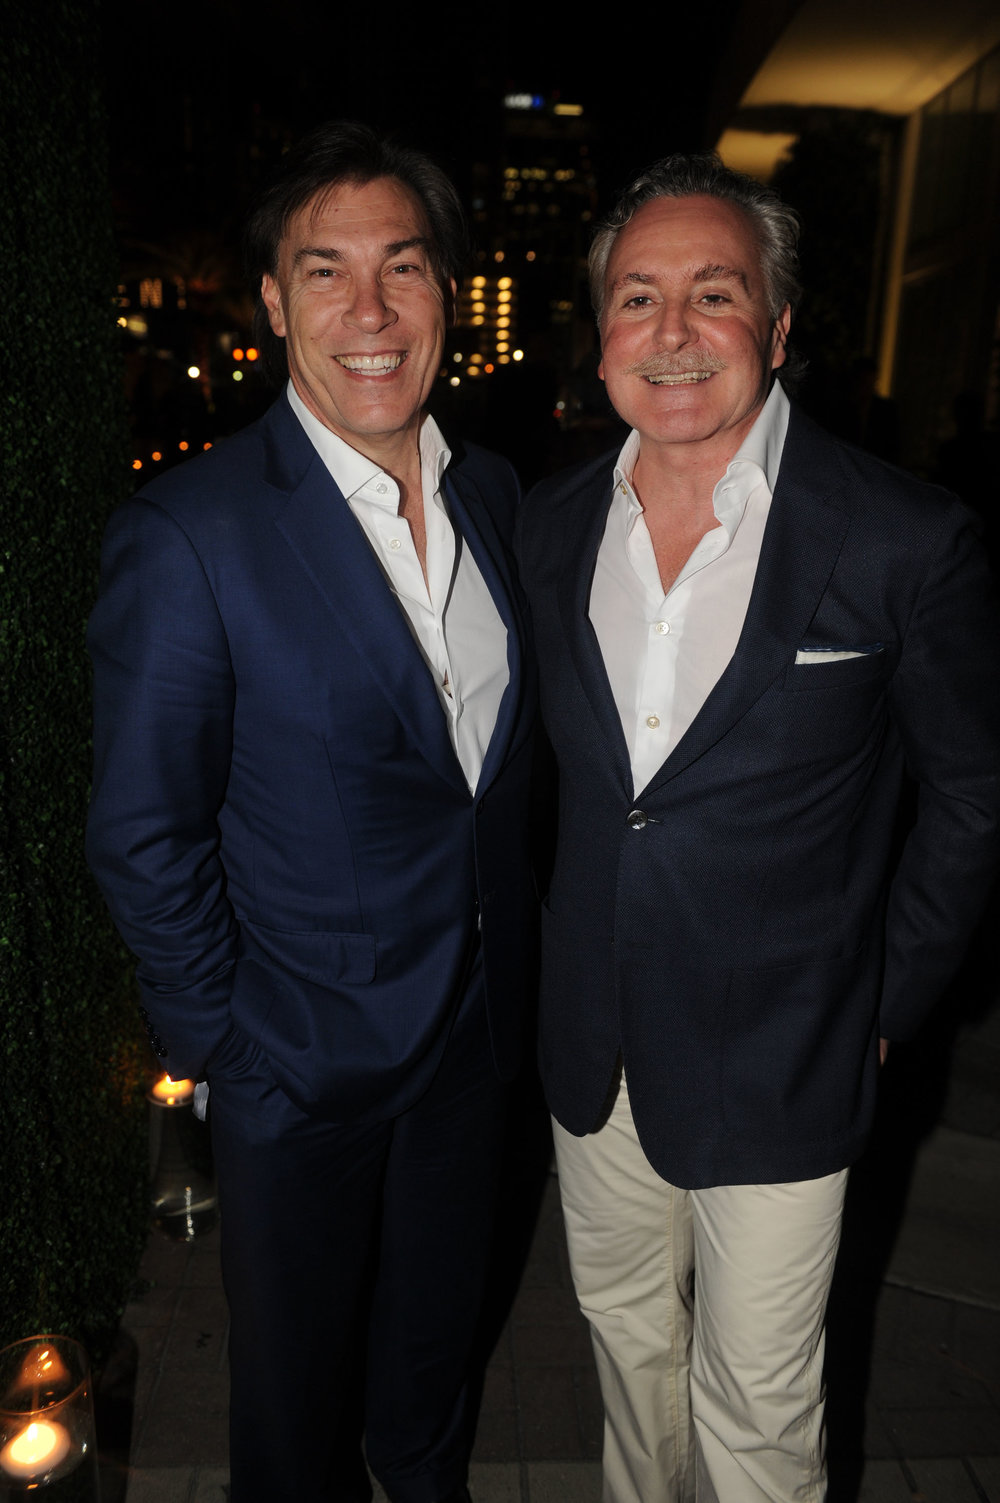 Edgardo Defortuna and Shahab Karmely One River Point Sales Gallery Grand Opening